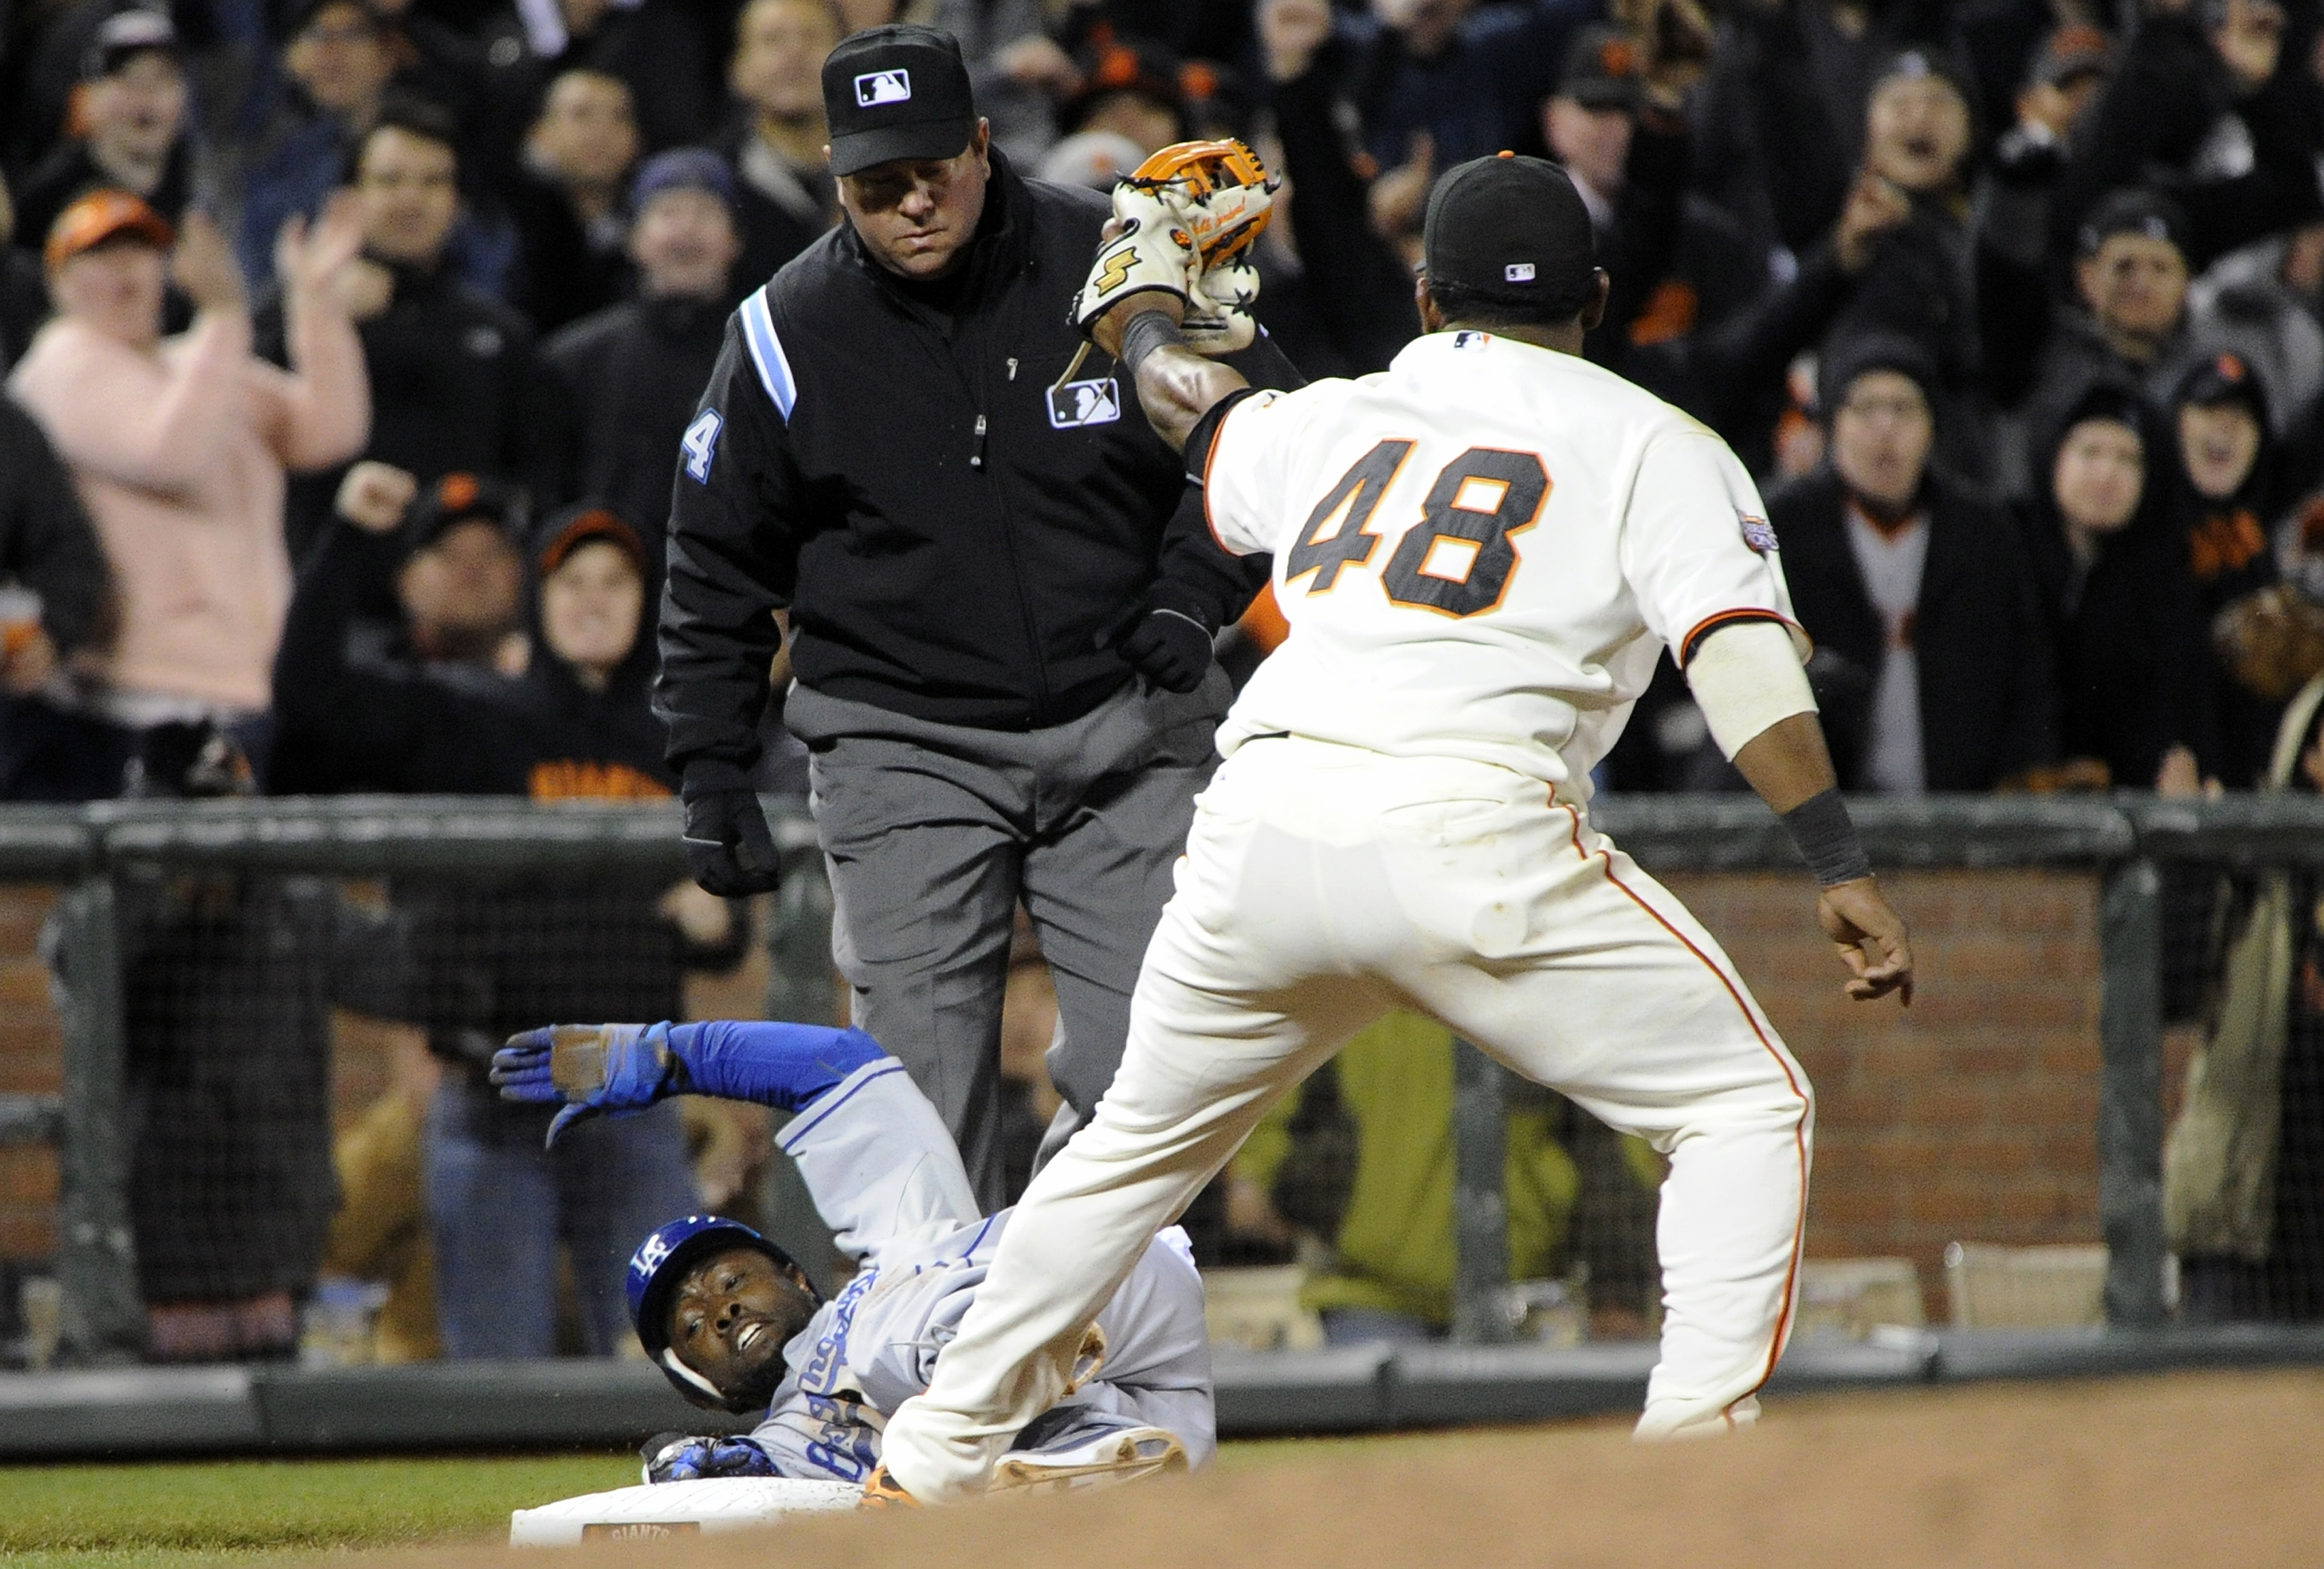 SAN FRANCISCO, CA - APRIL 13: Pablo Sandoval #48 of the San Francisco Giants shows third base umpire Sam Holbrook the ball after tagging out Tony Gwynn Jr. #10 of the Los Angeles Dodgers during a MLB baseball game at AT&T Park April 13, 2011 in San Franci